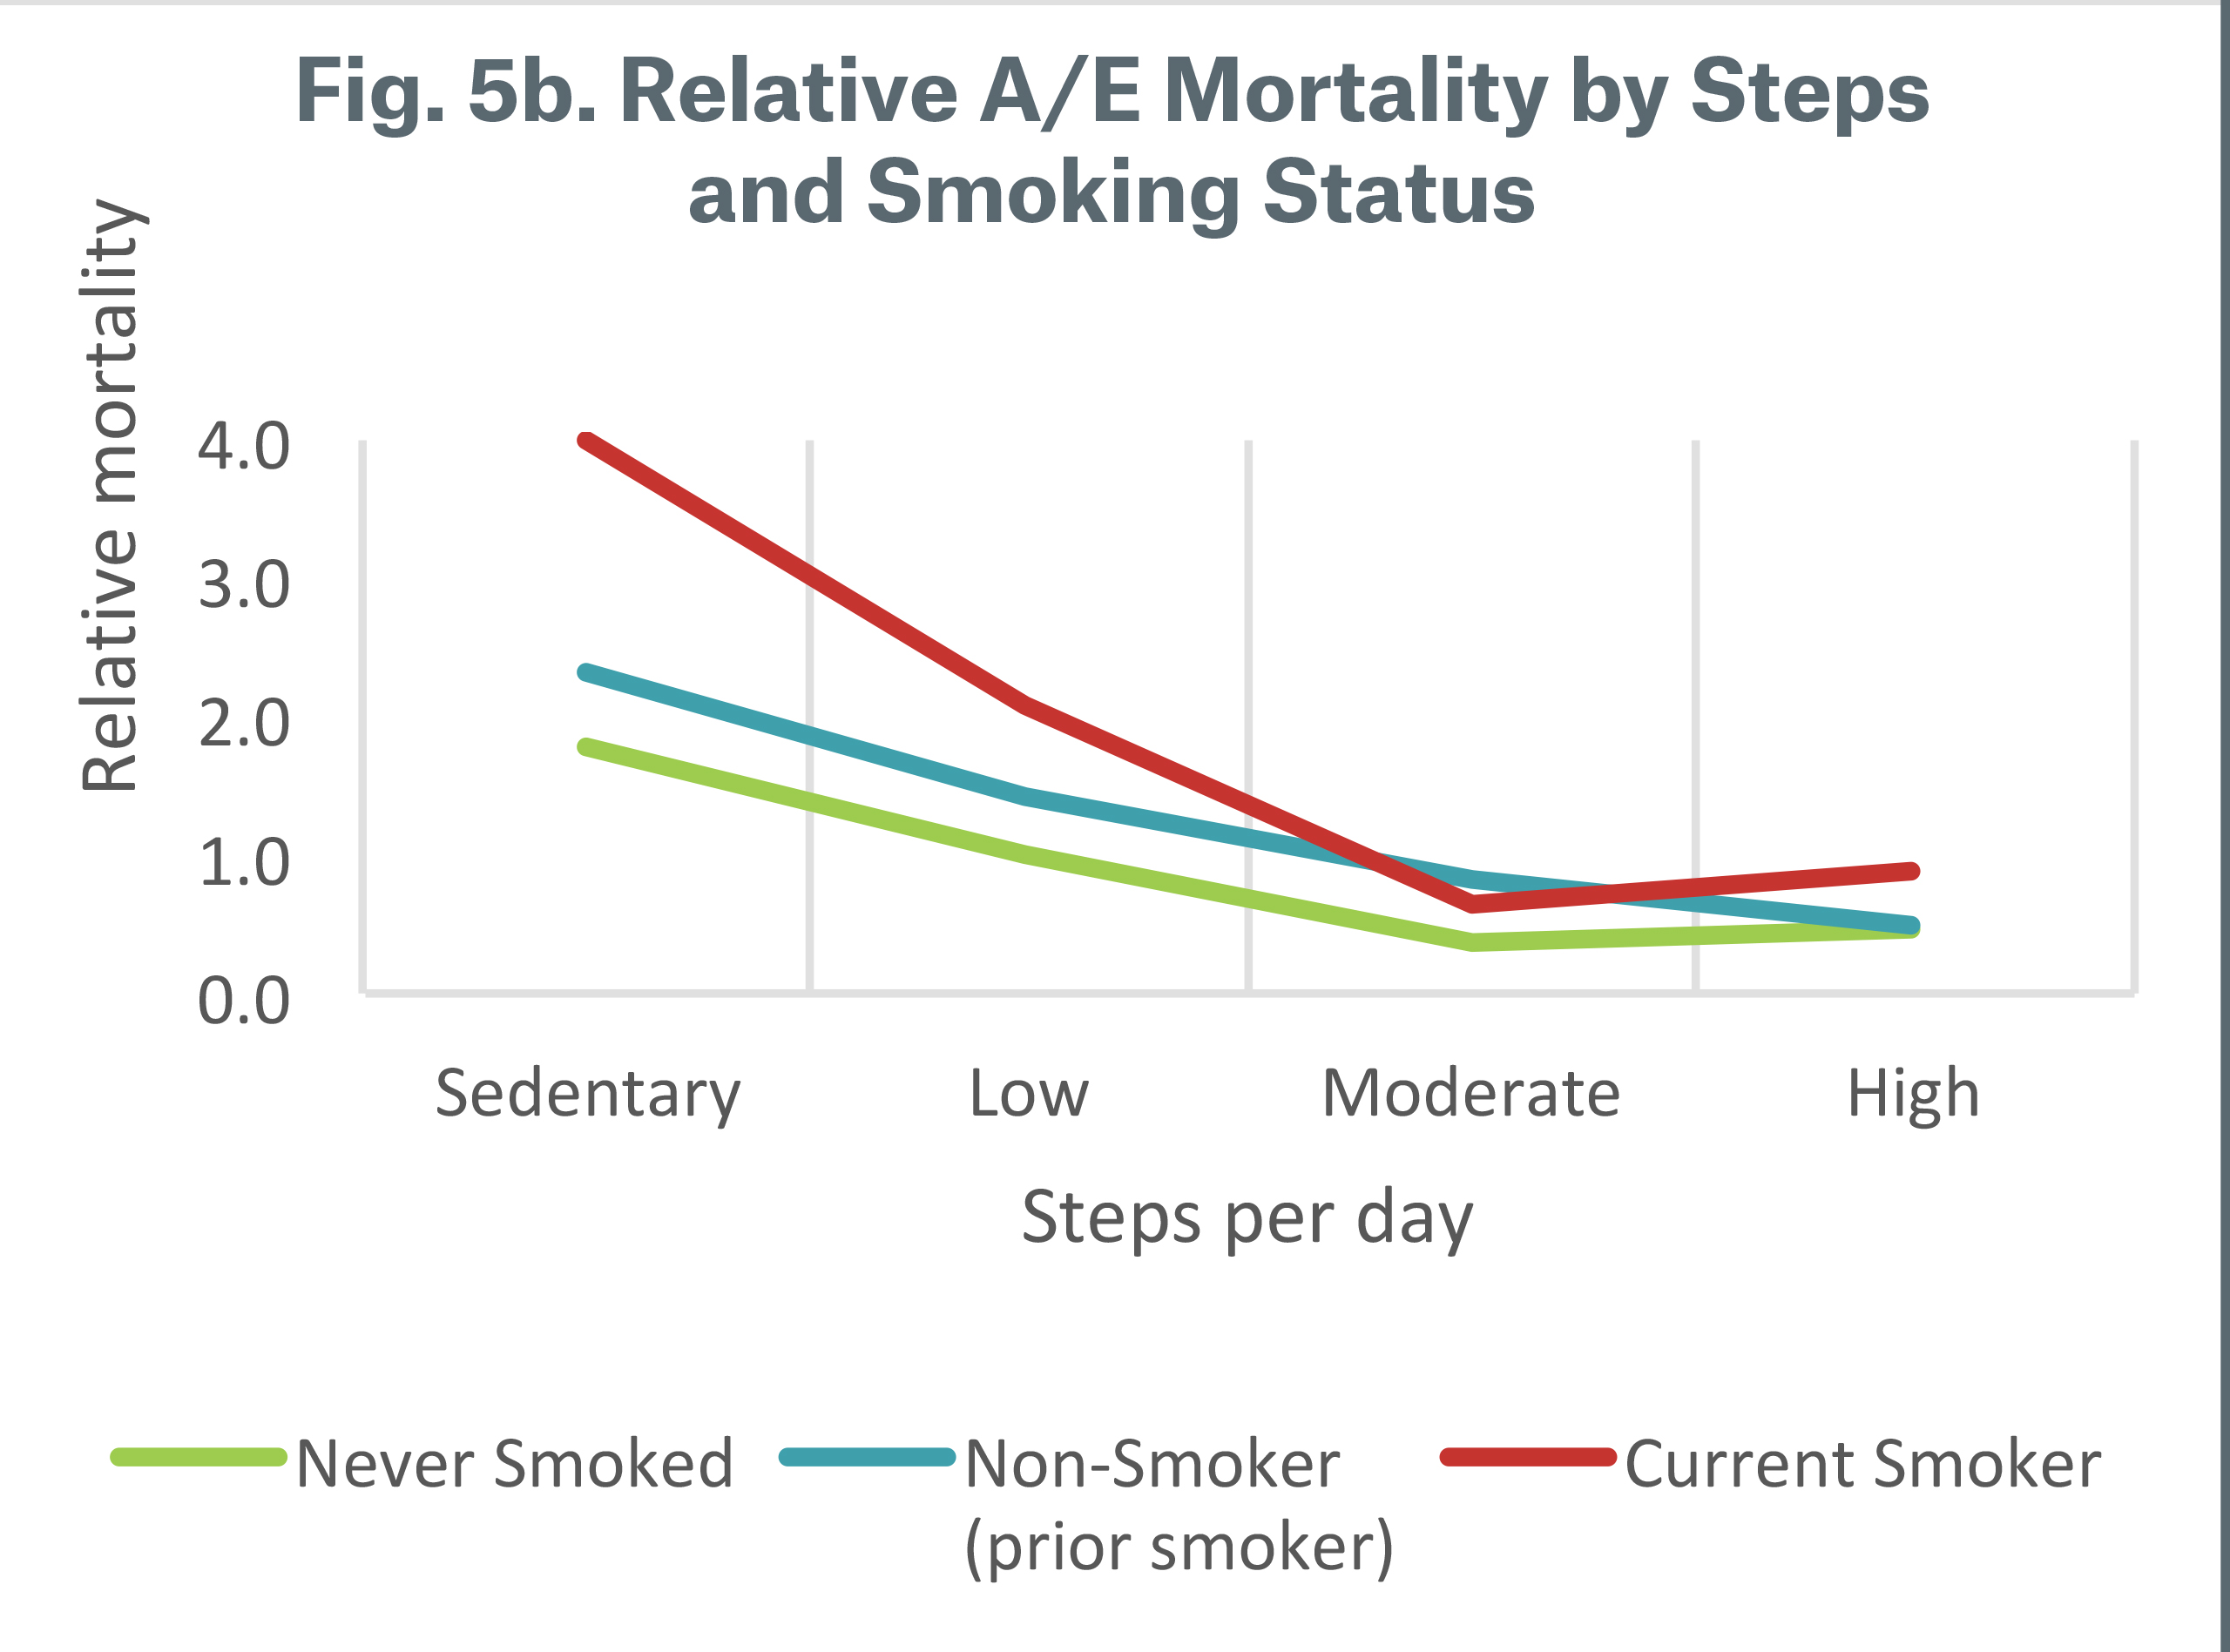 Figure 5b Relative A/E Mortality* by Steps and Smoking Status